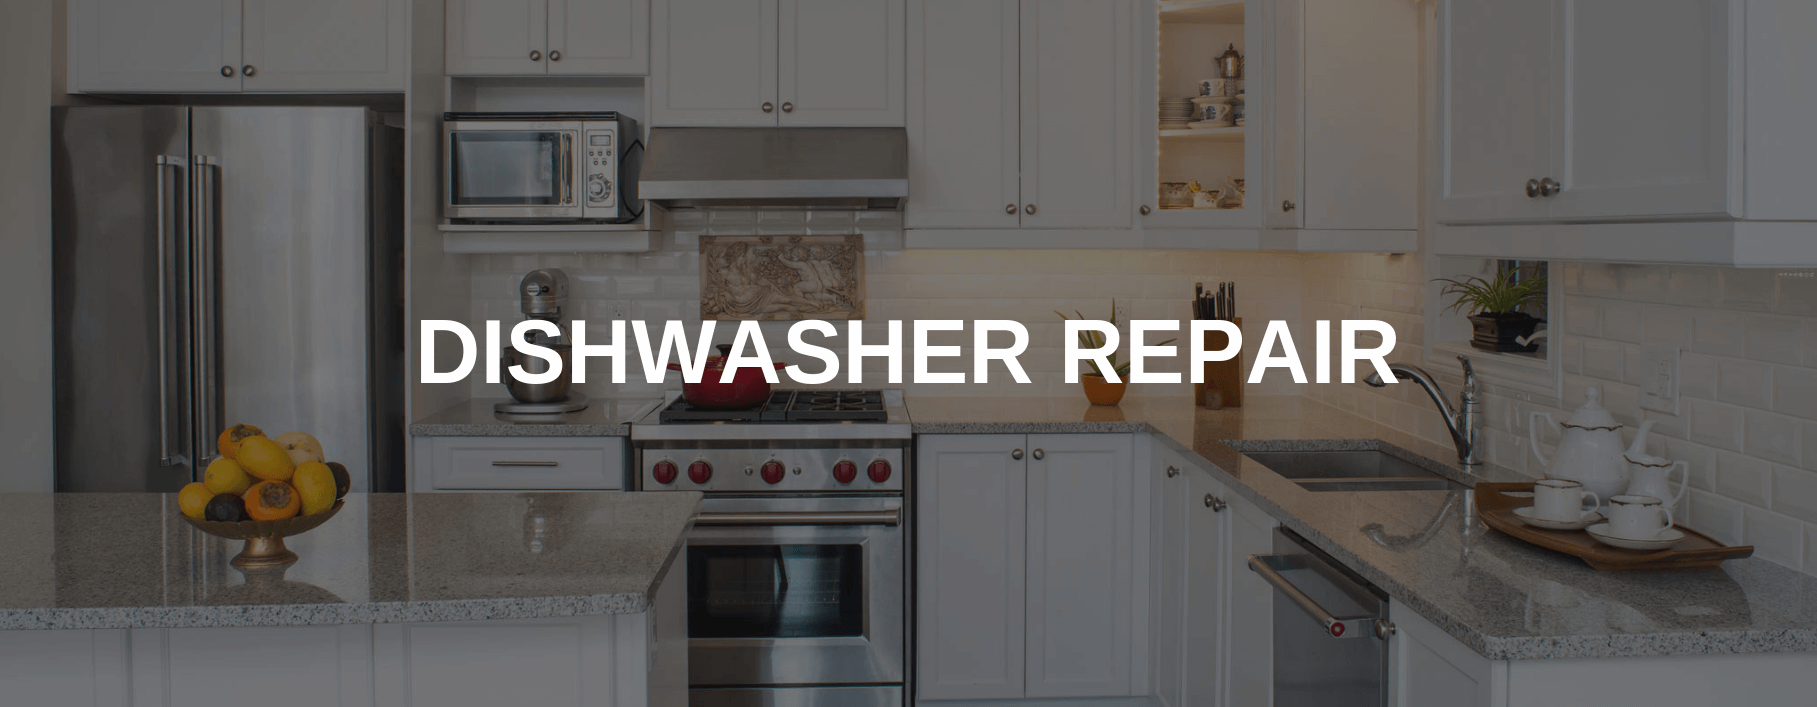 dishwasher repair missouri city